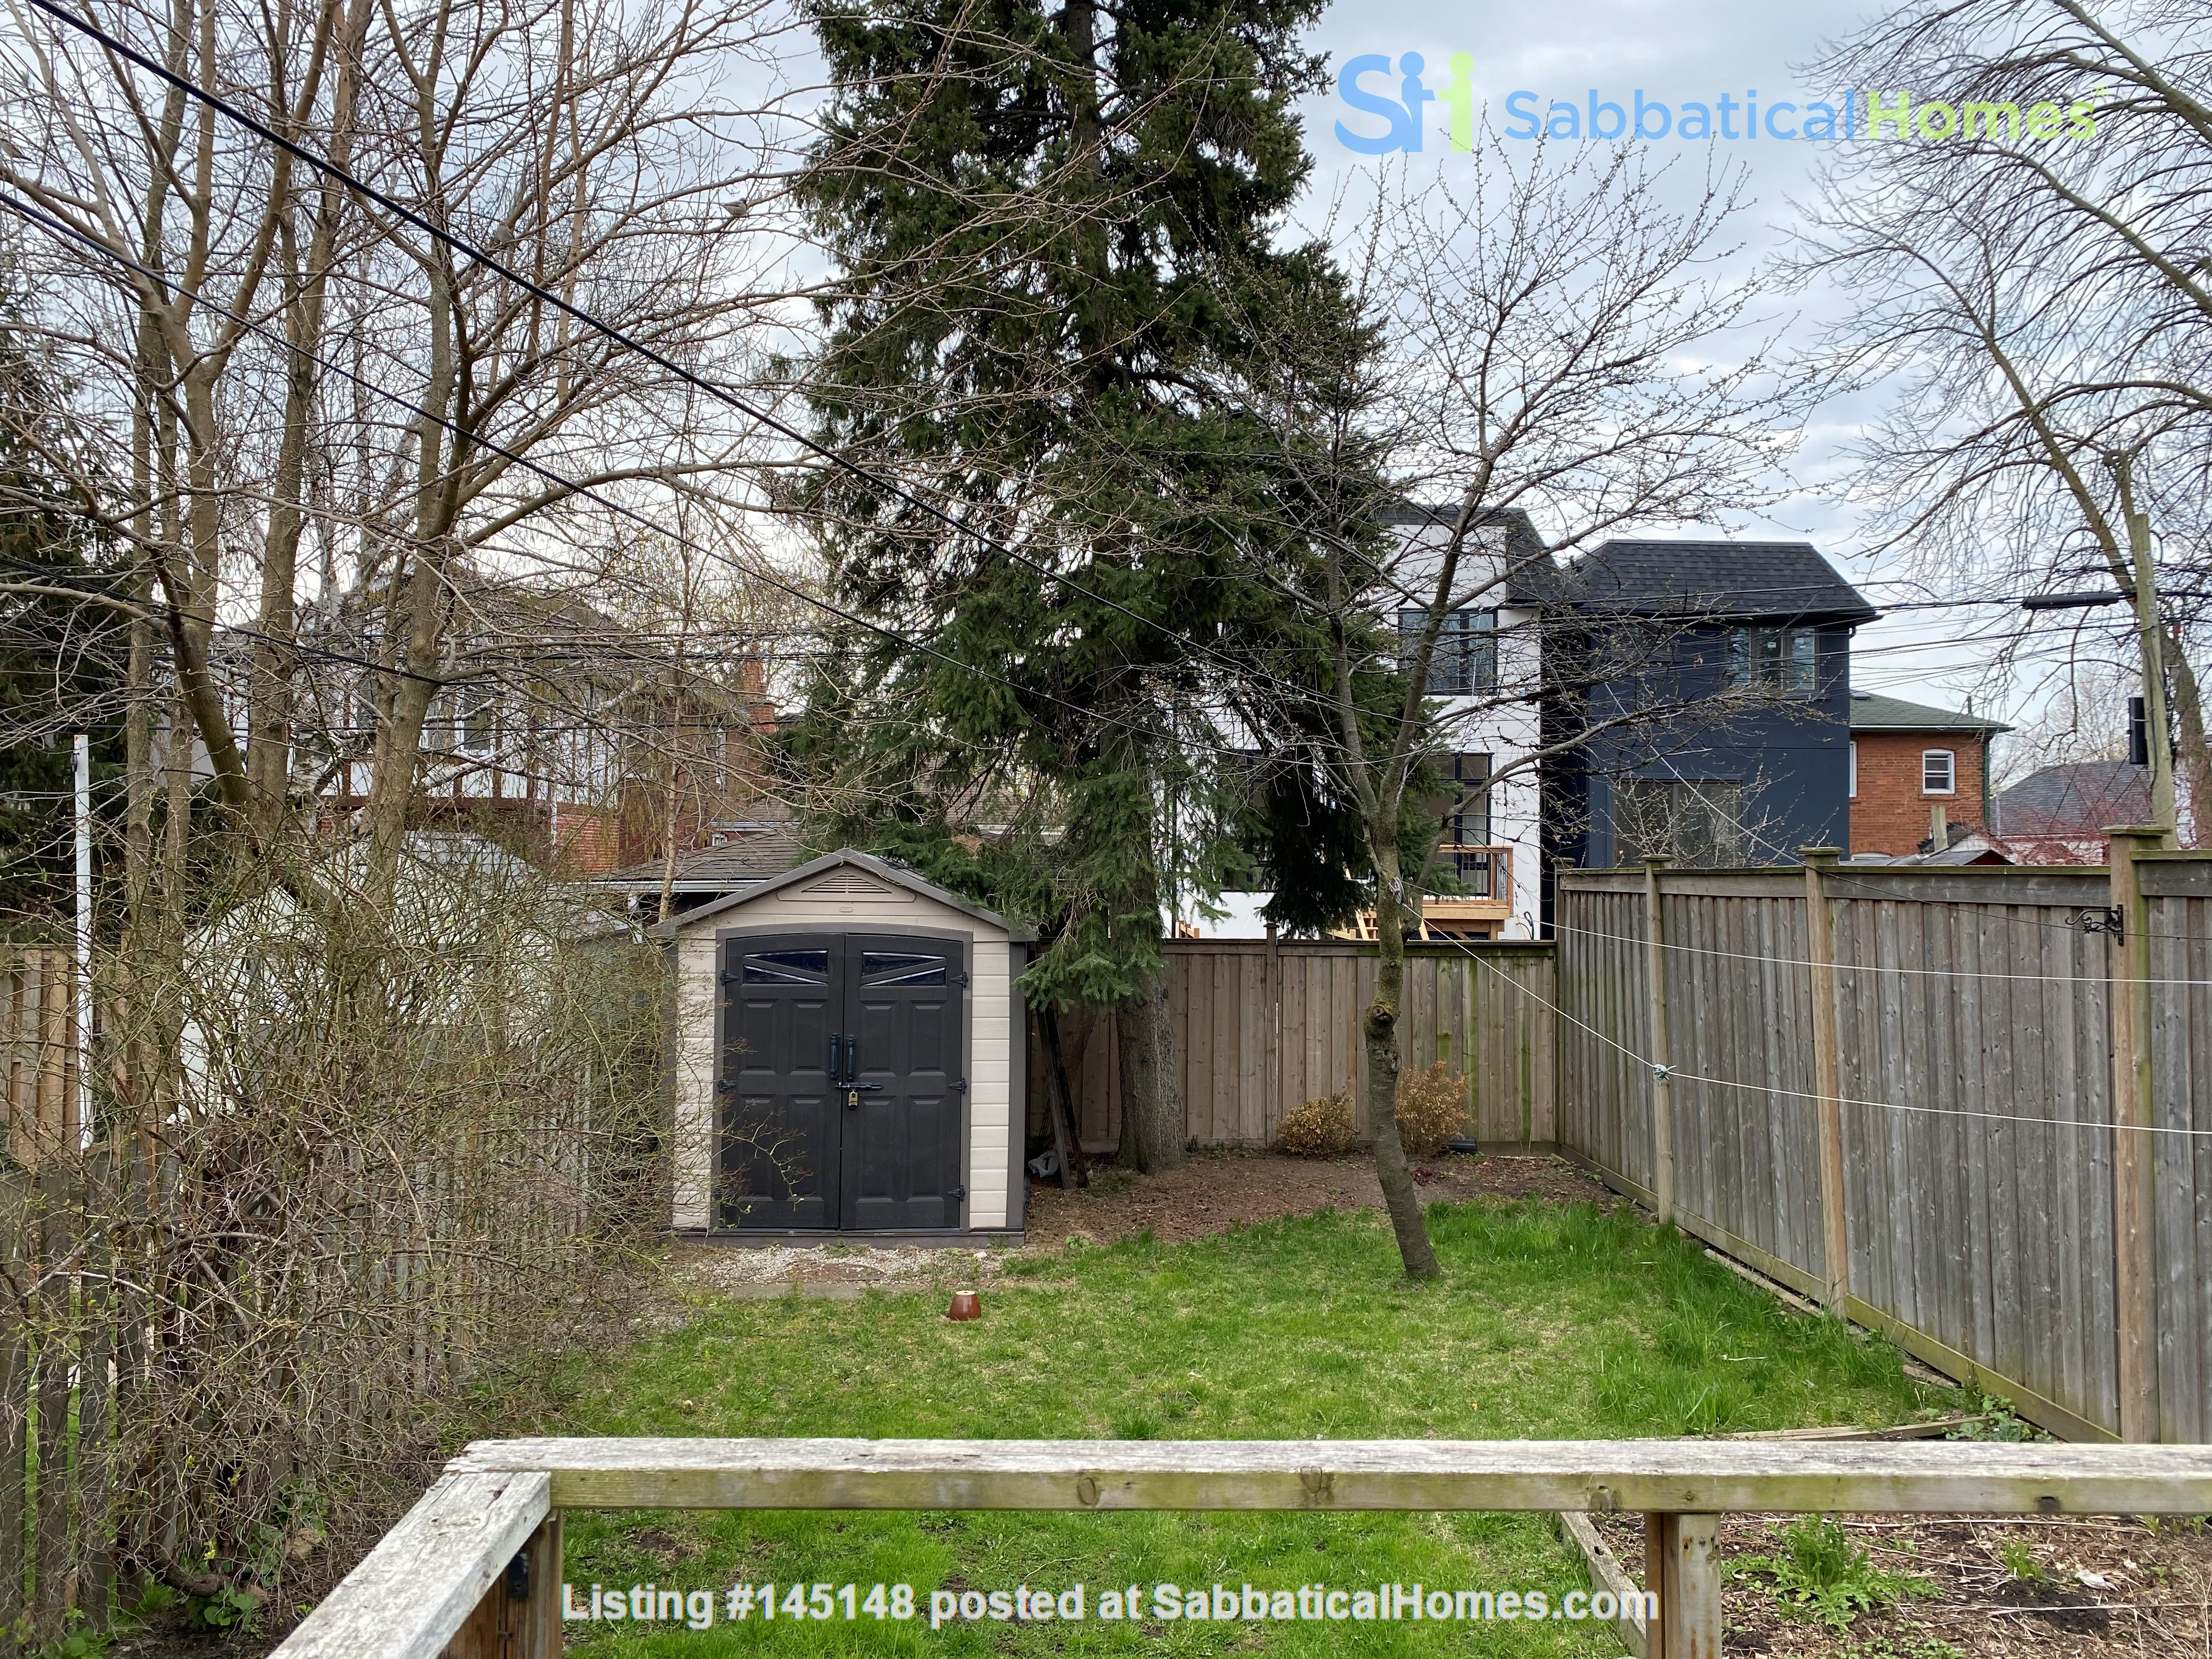 2-BR Renovated Bungalow: Perfect for a family with young kids! Home Rental in Toronto, Ontario, Canada 7